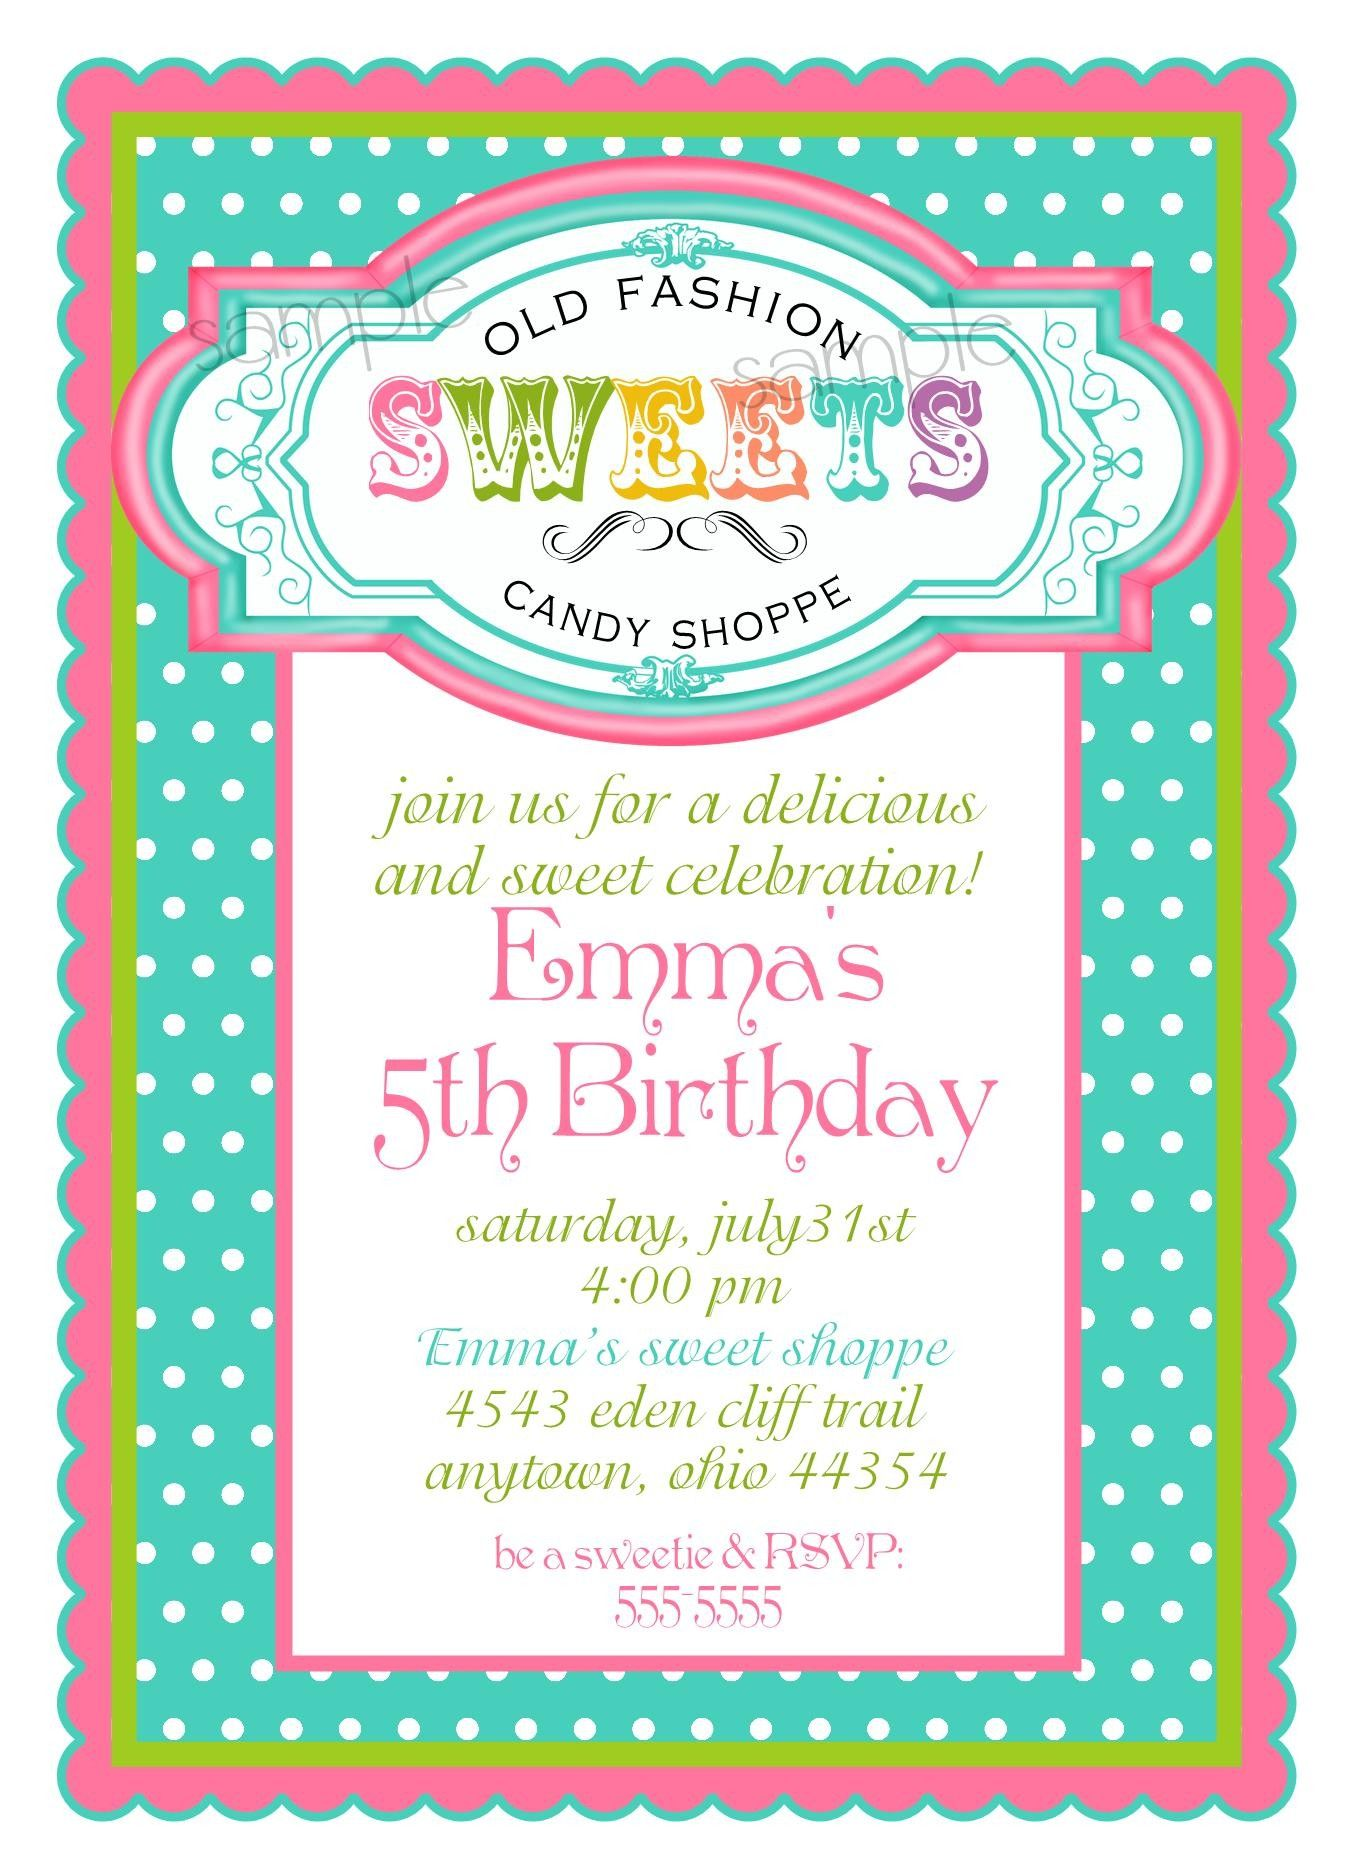 Personalized Invitations, Vintage Candy Parlor, Sweet Shoppe ...